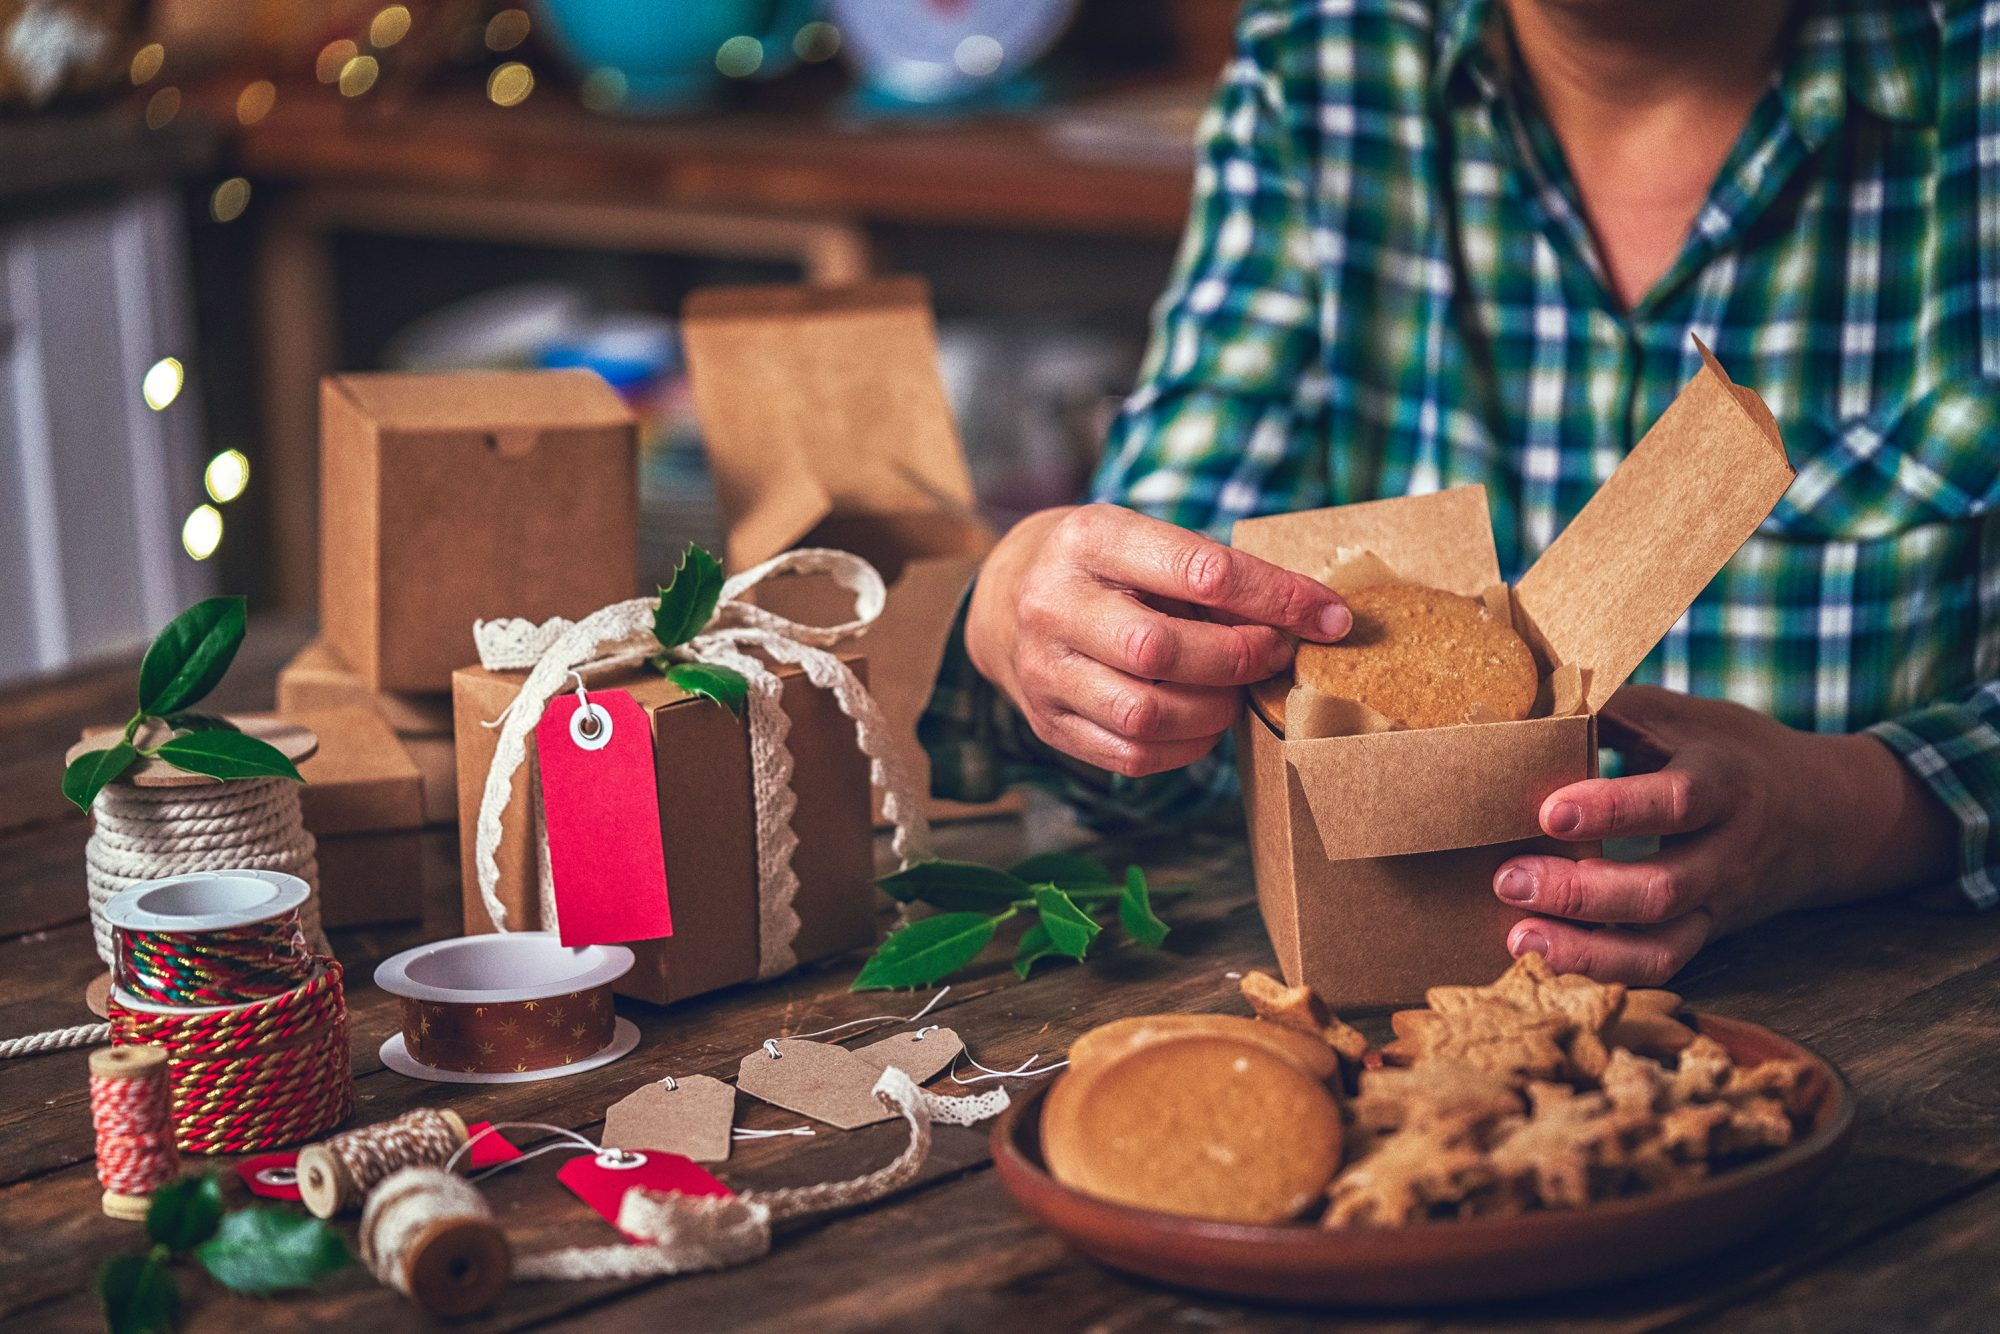 How to Ship Christmas Cookies So They'll Arrive Fresh and Crumble-Free, According to Postal Experts